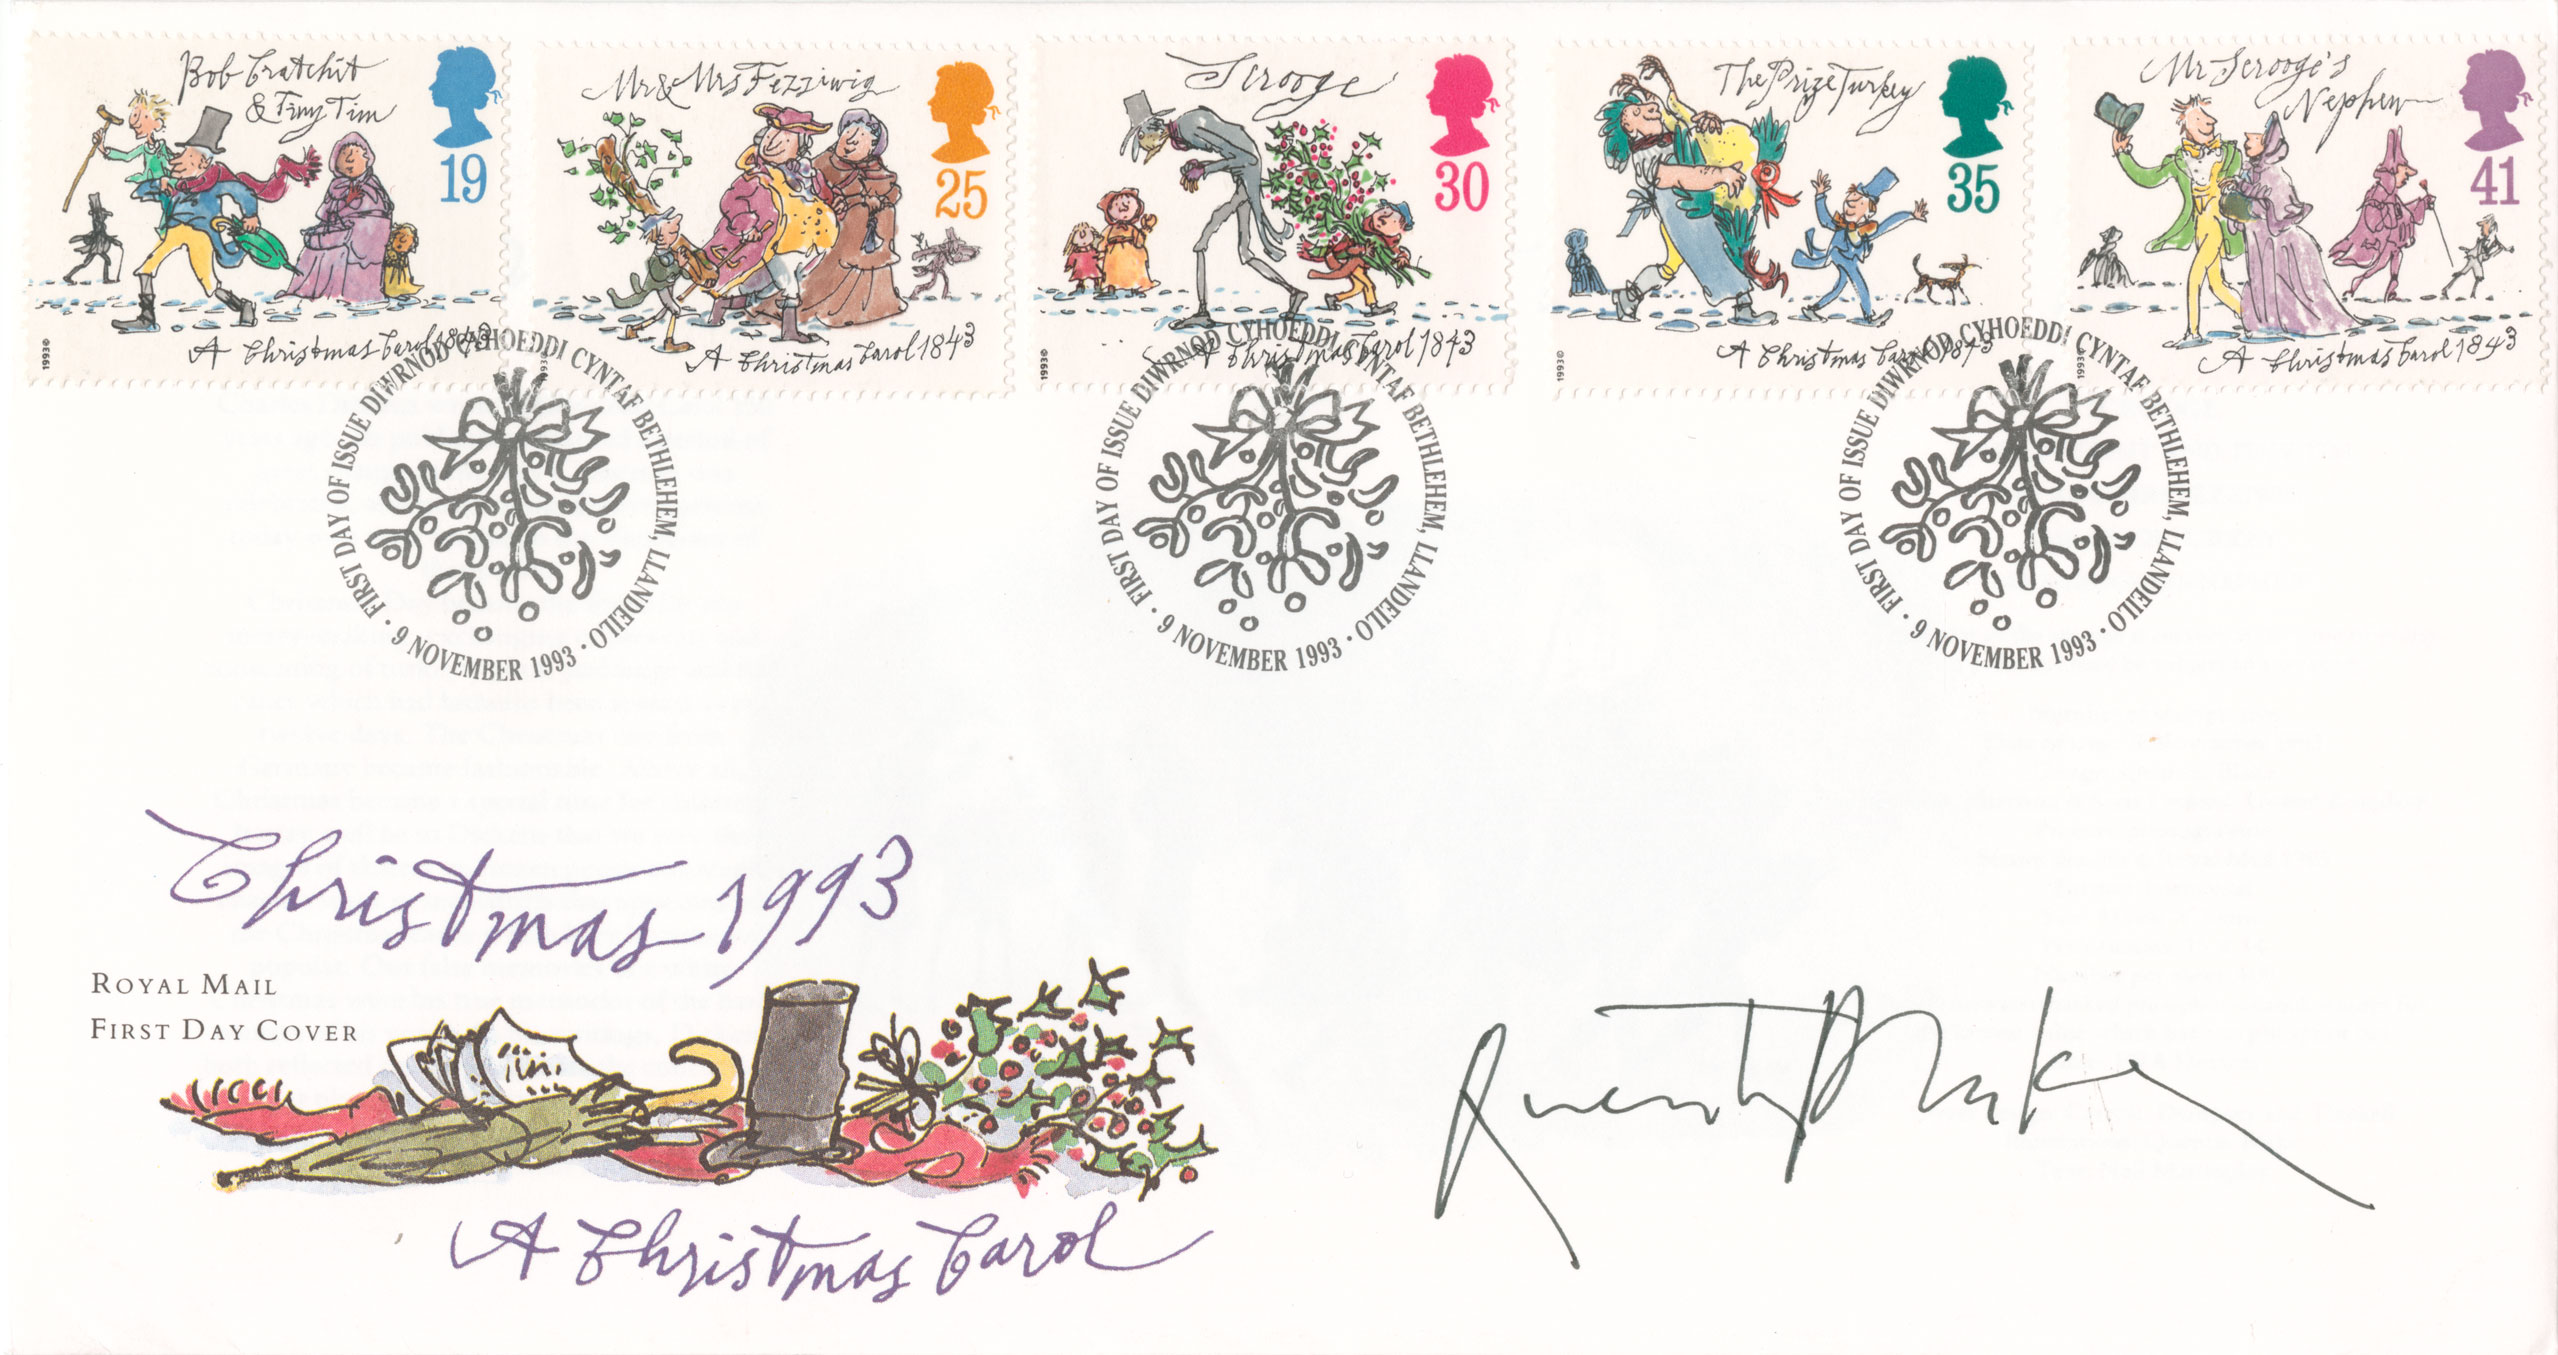 First day cover with the five issued stamp and an illustration of a hat and umbrella.